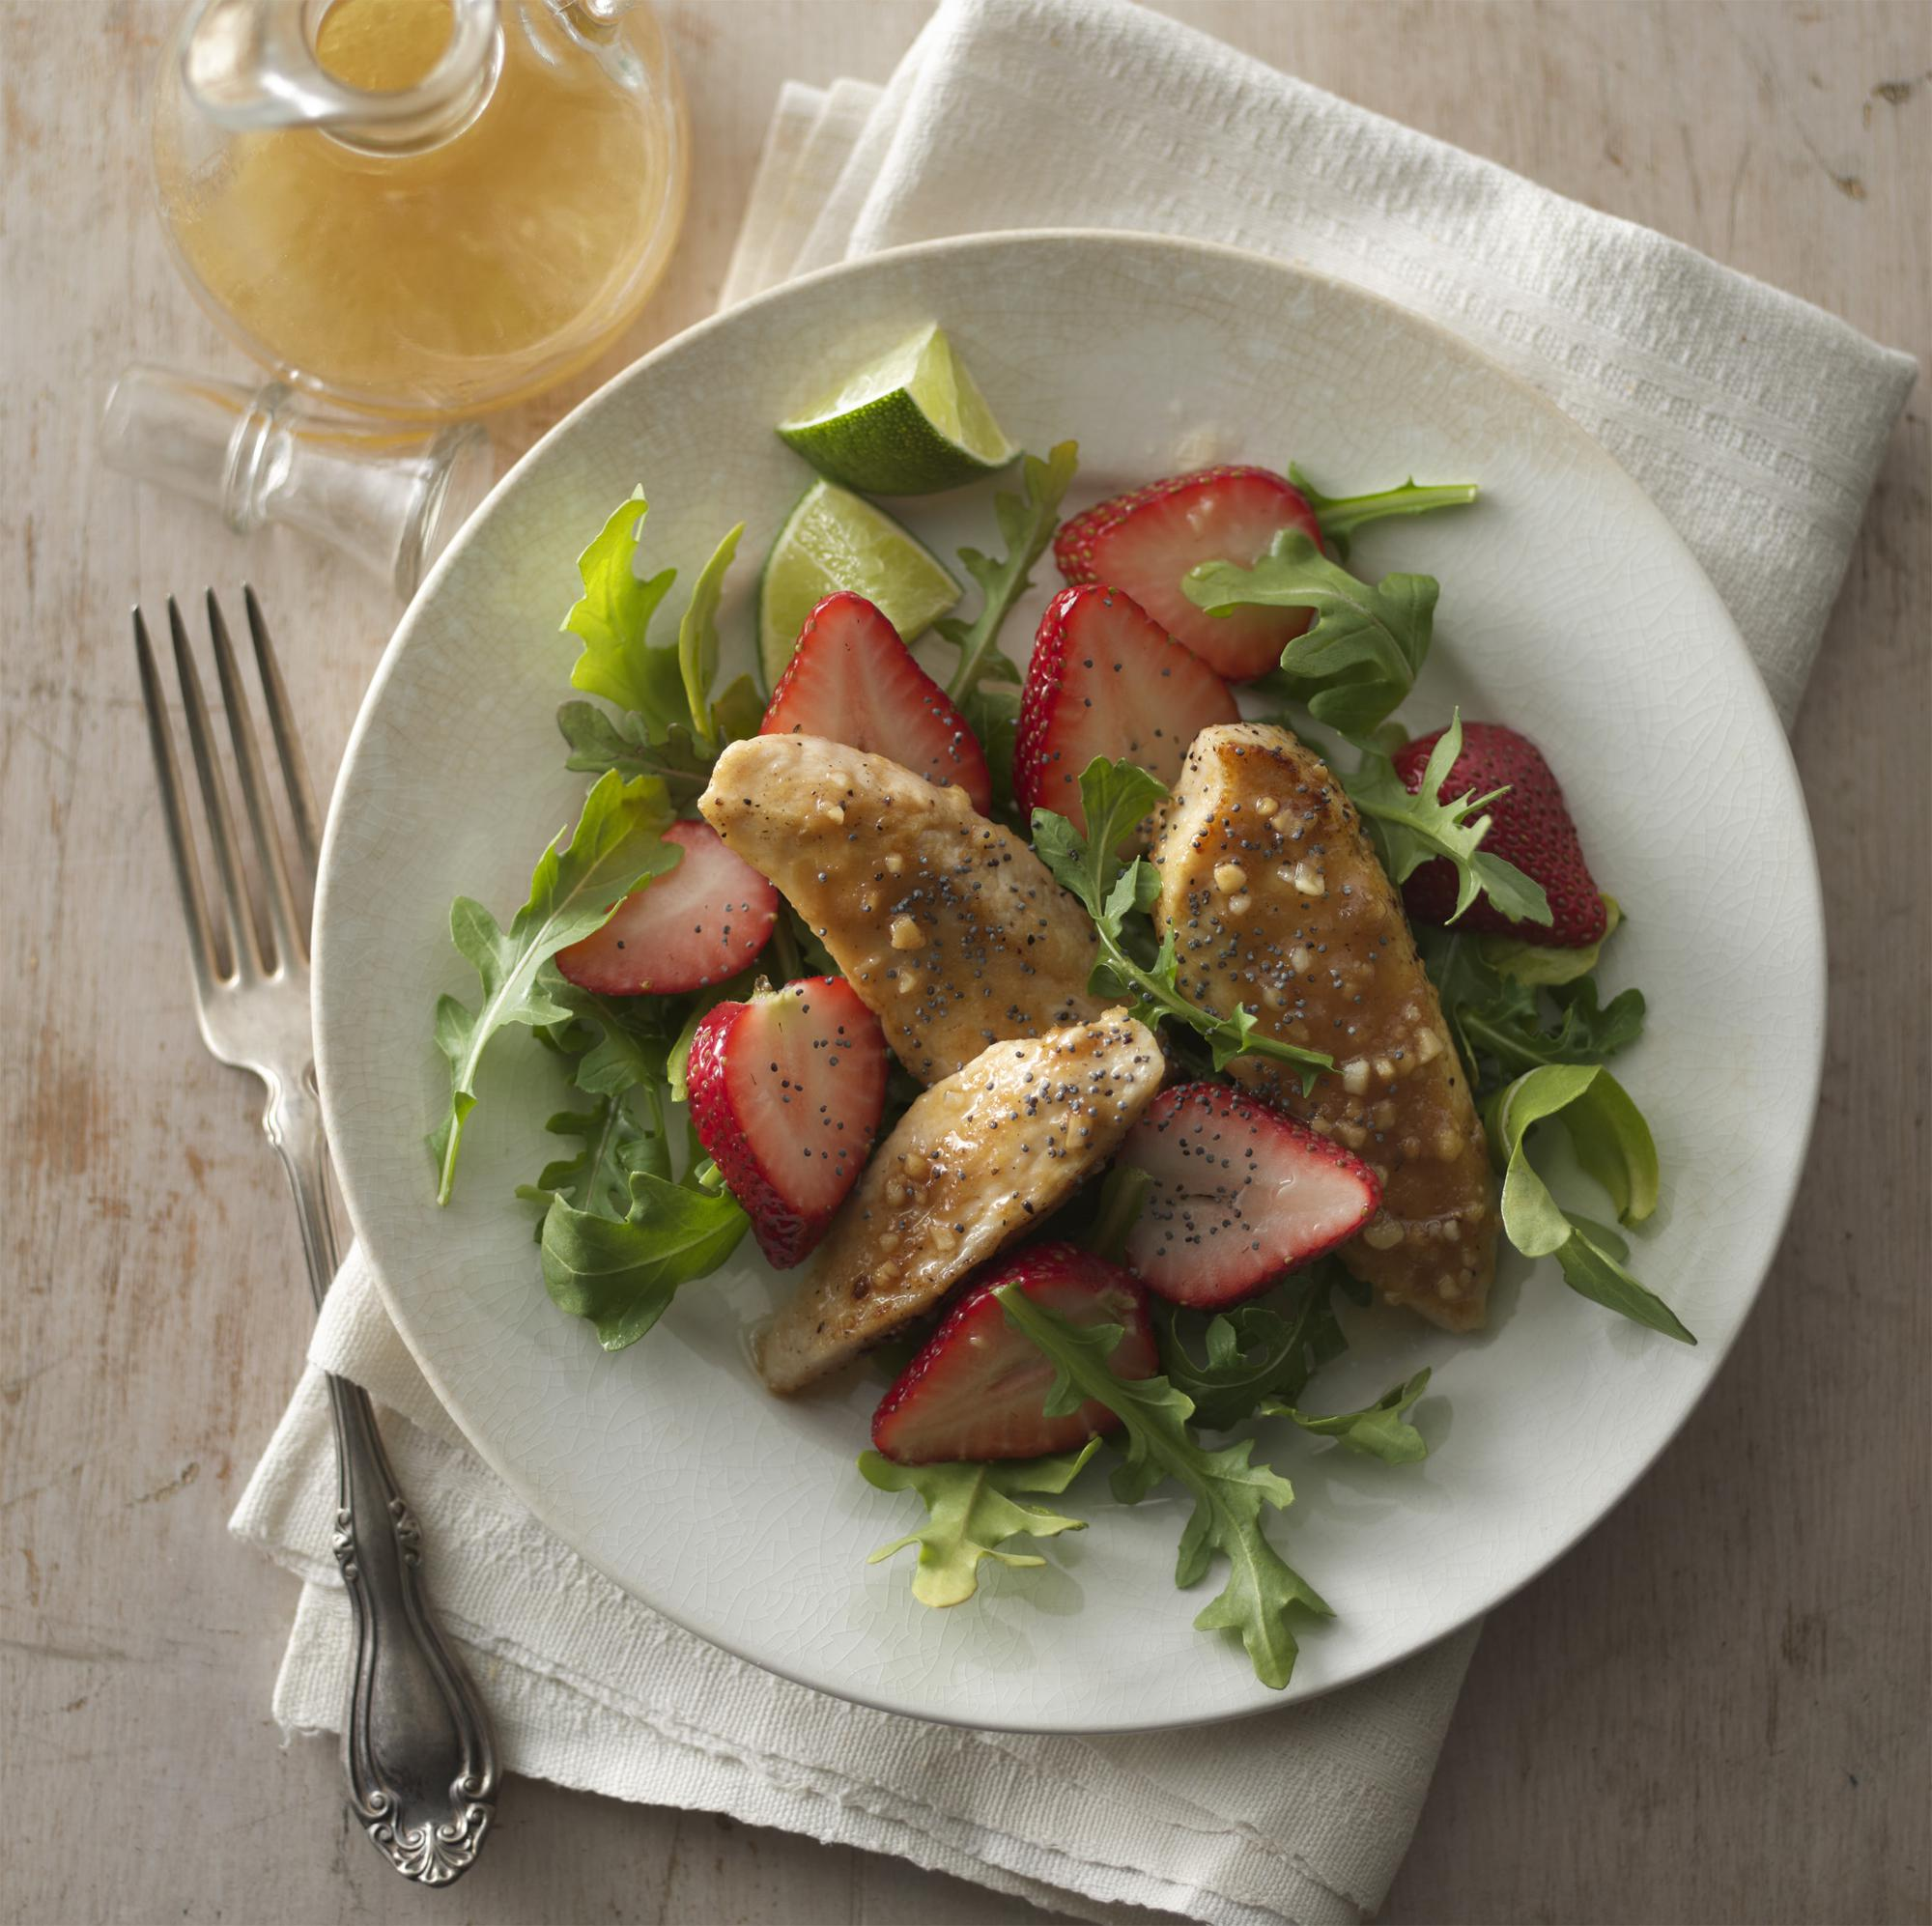 Strawberry Arugula Salad with Glazed Ginger Honeyed Chicken Tenders